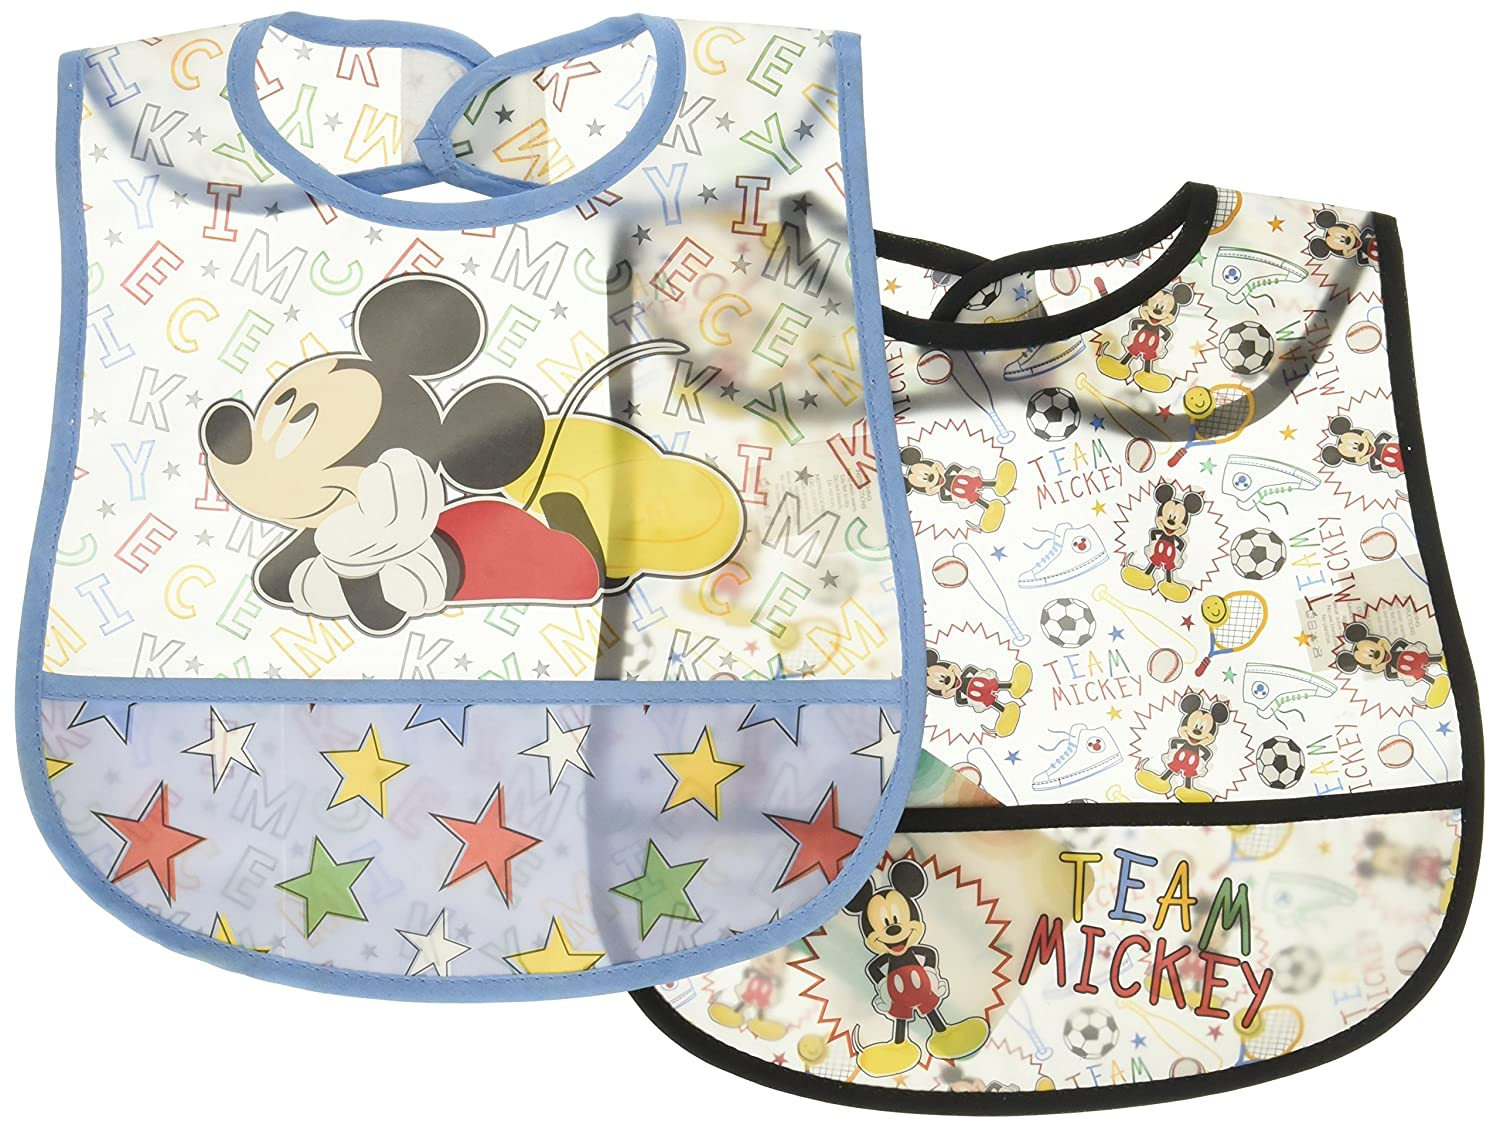 Disney Mickey Mouse 2 Piece Printed Frosted Water Proof Peva Bib, Blue Crumb Catcher Pocket